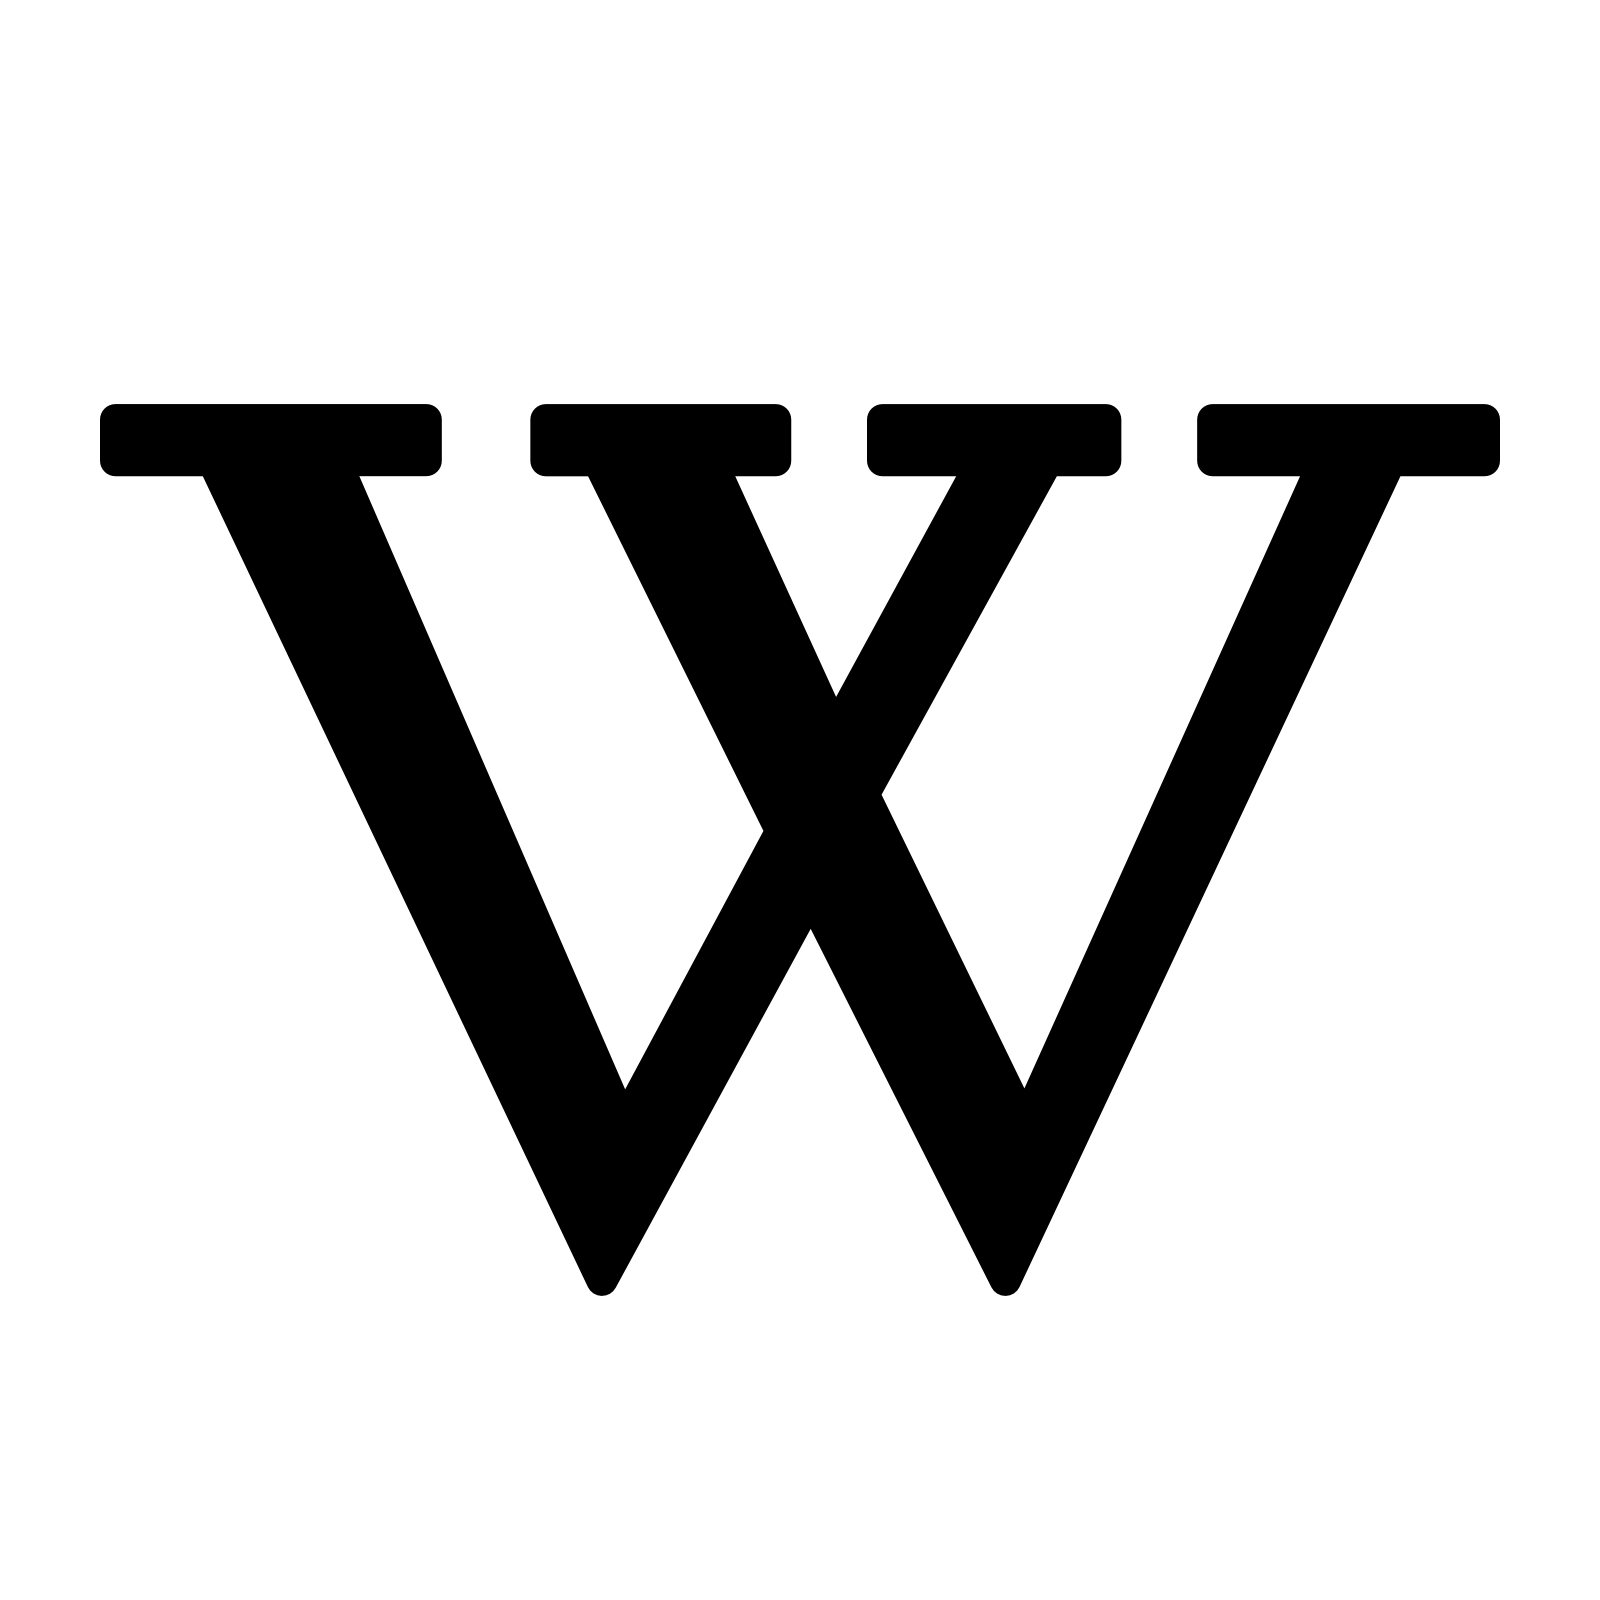 Wikipedia article creation/monitor services